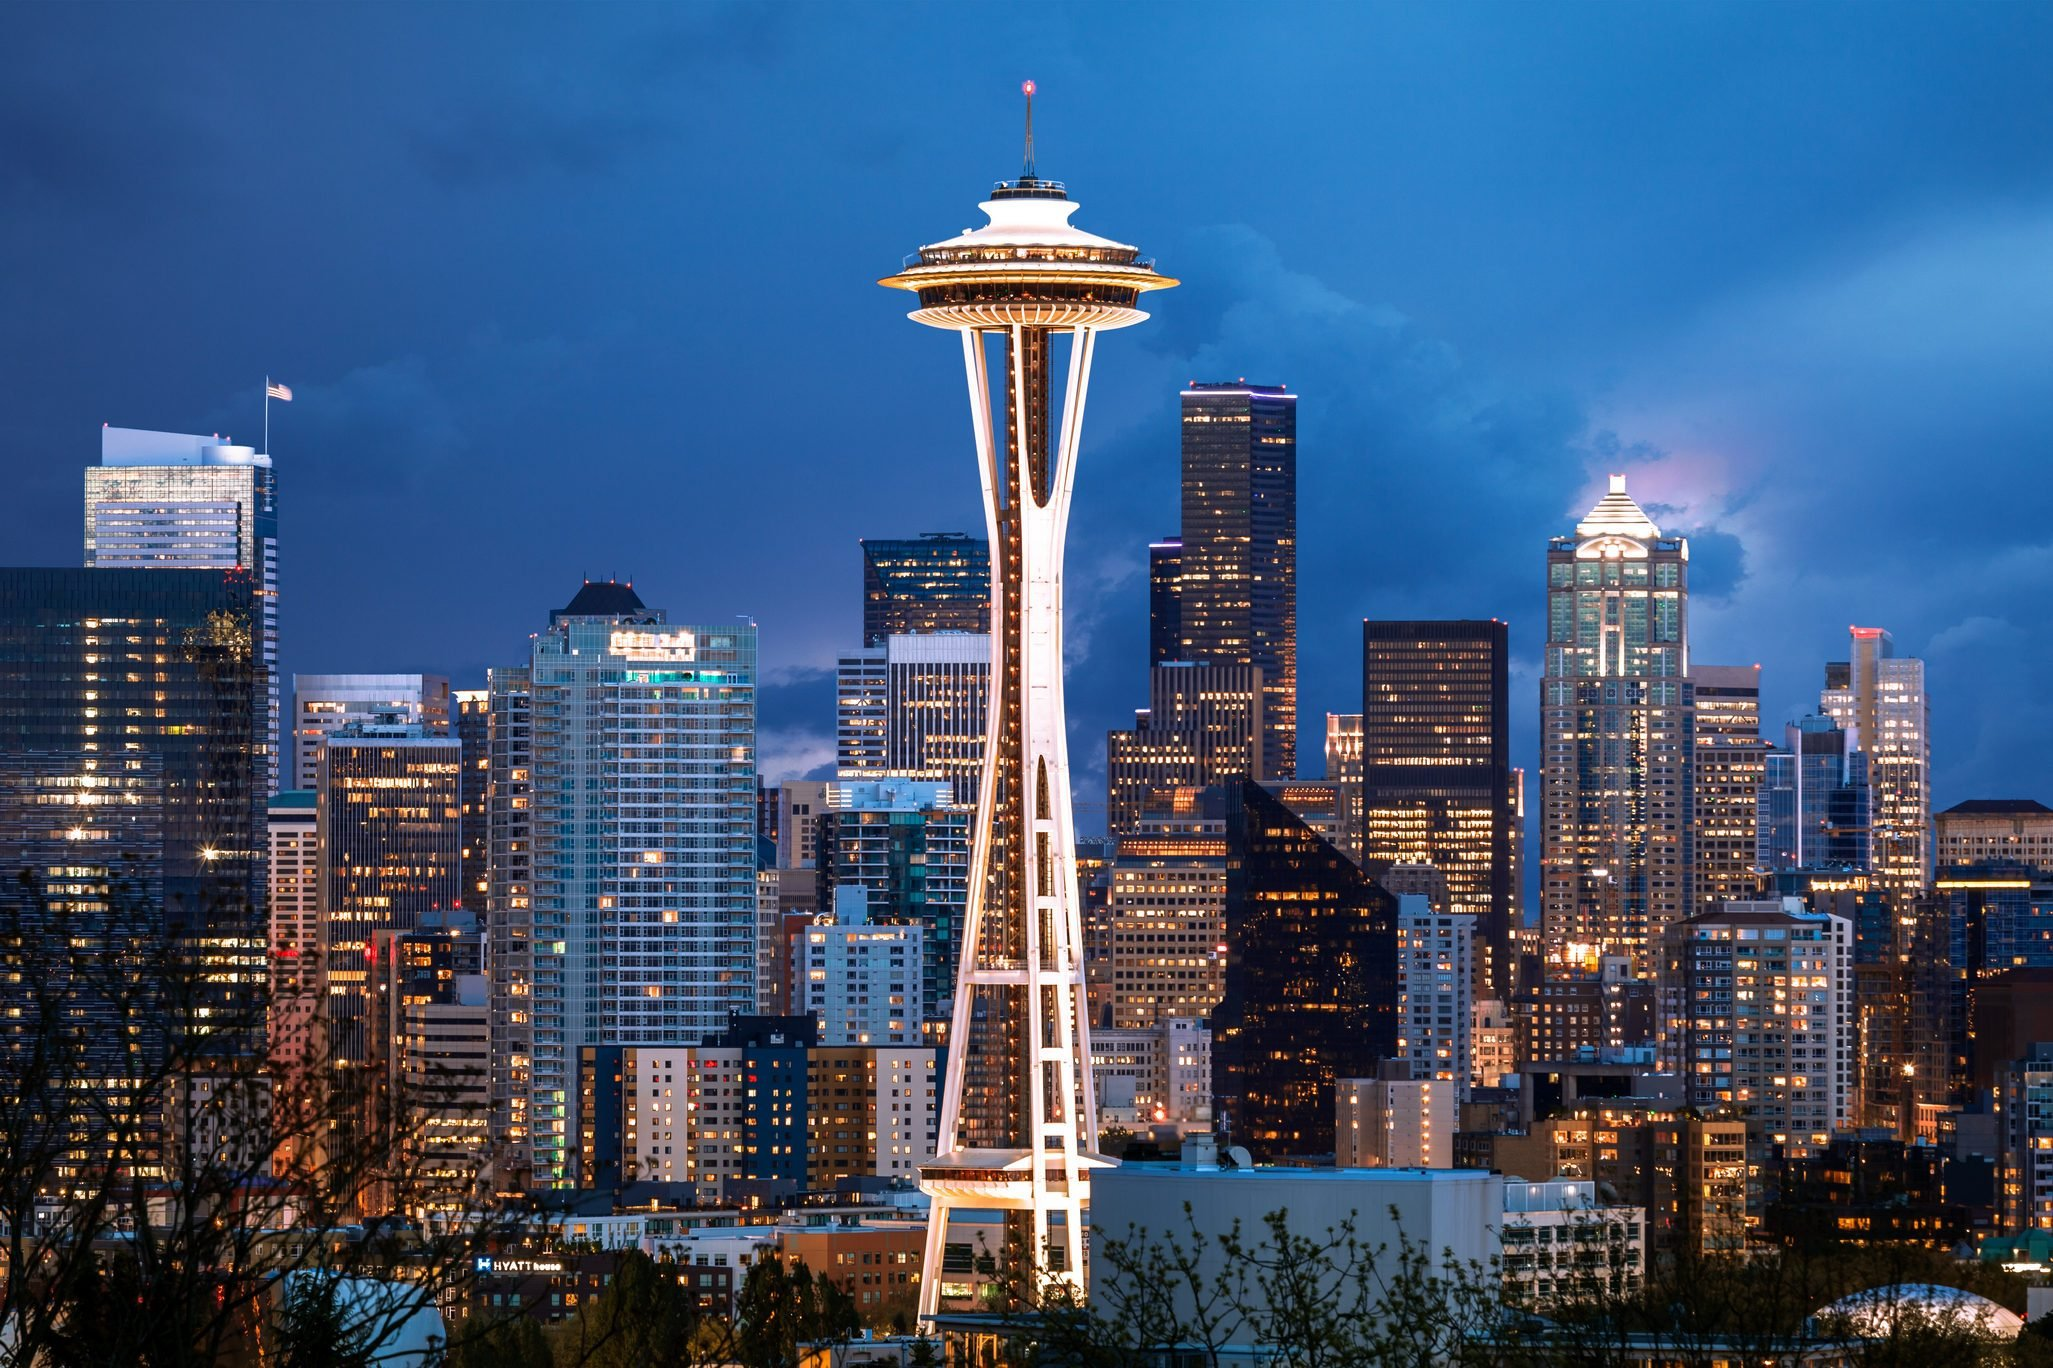 Skyline of Seattle in early evening with the Space Needle at the center; Seattle, Washington, America